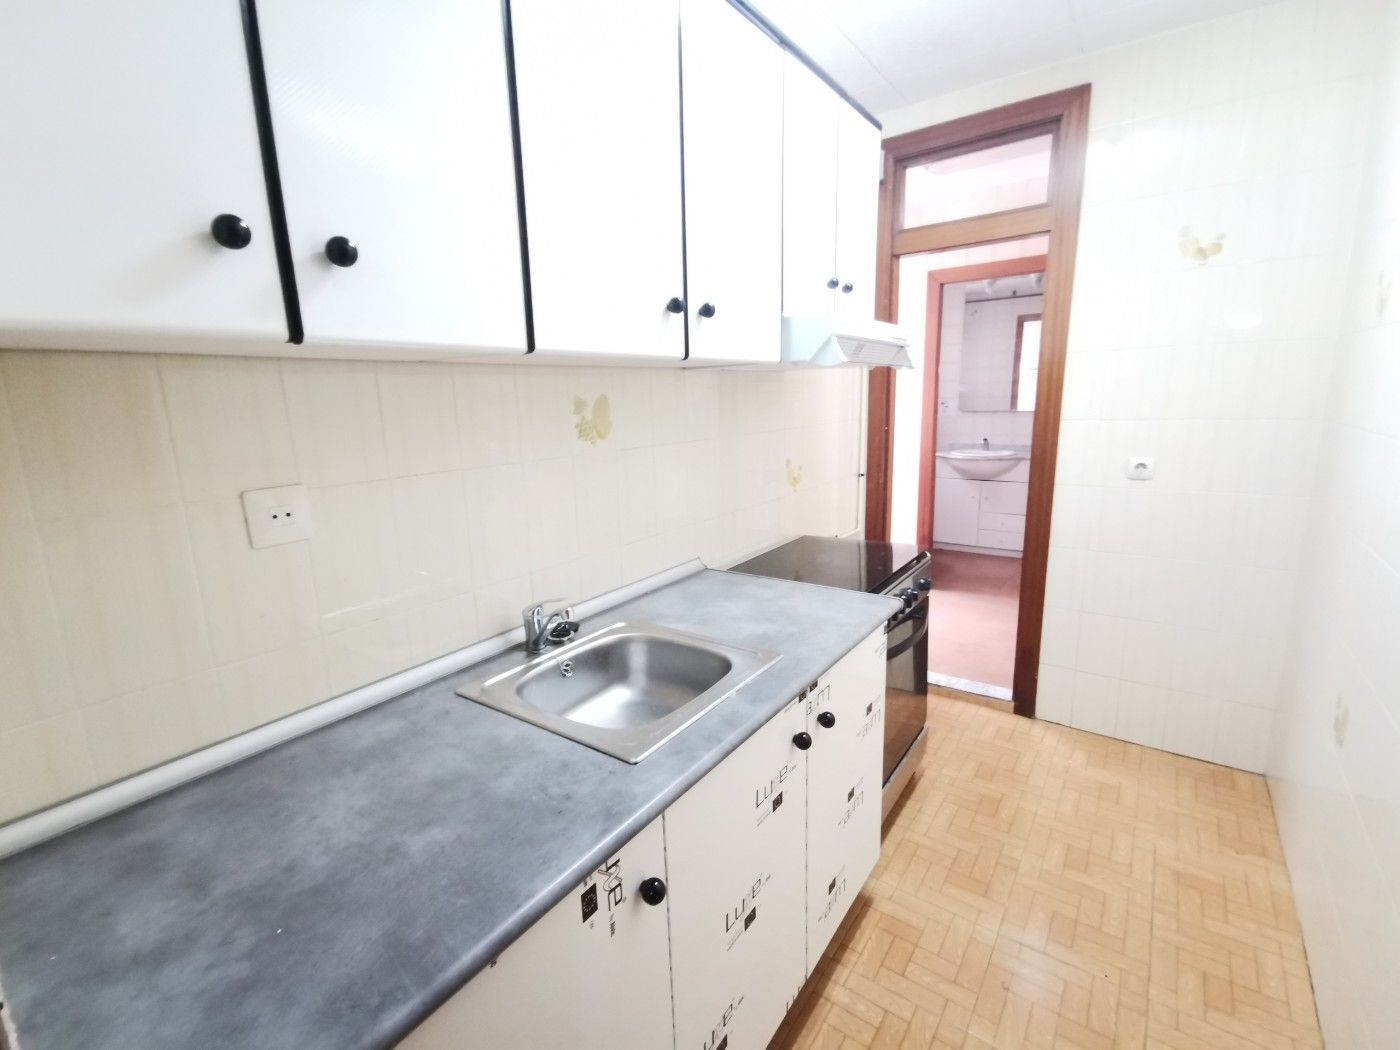 Location Appartement à C/ hospitalet de llobregat, 1. Planta baja!!!